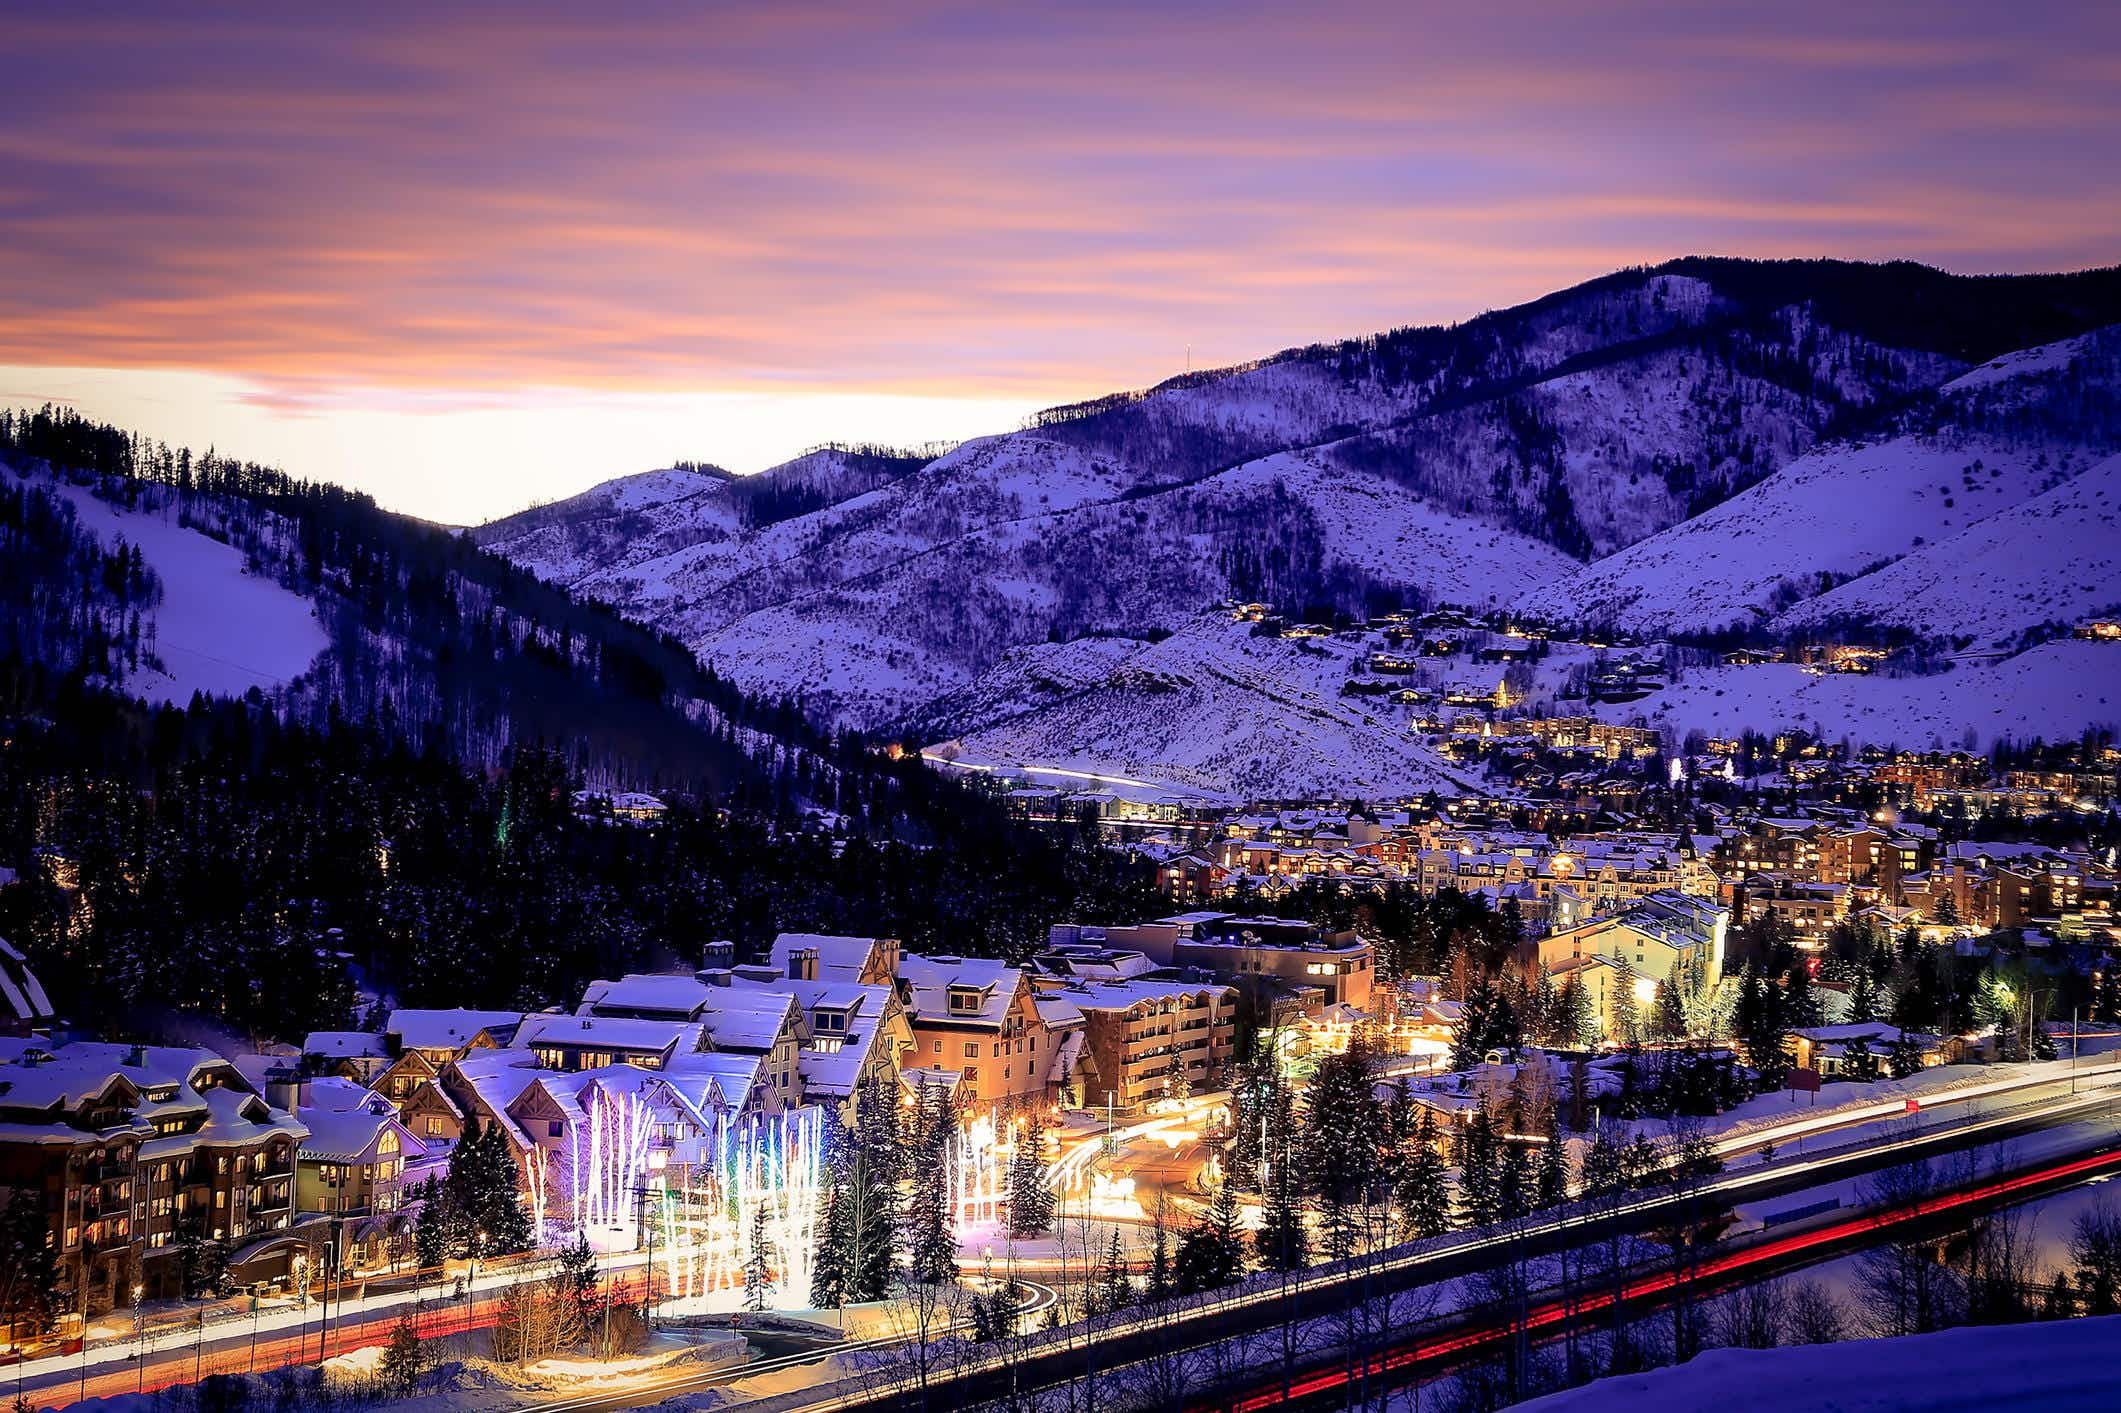 Vail, Colorado has been named the first sustainable mountain resort destination